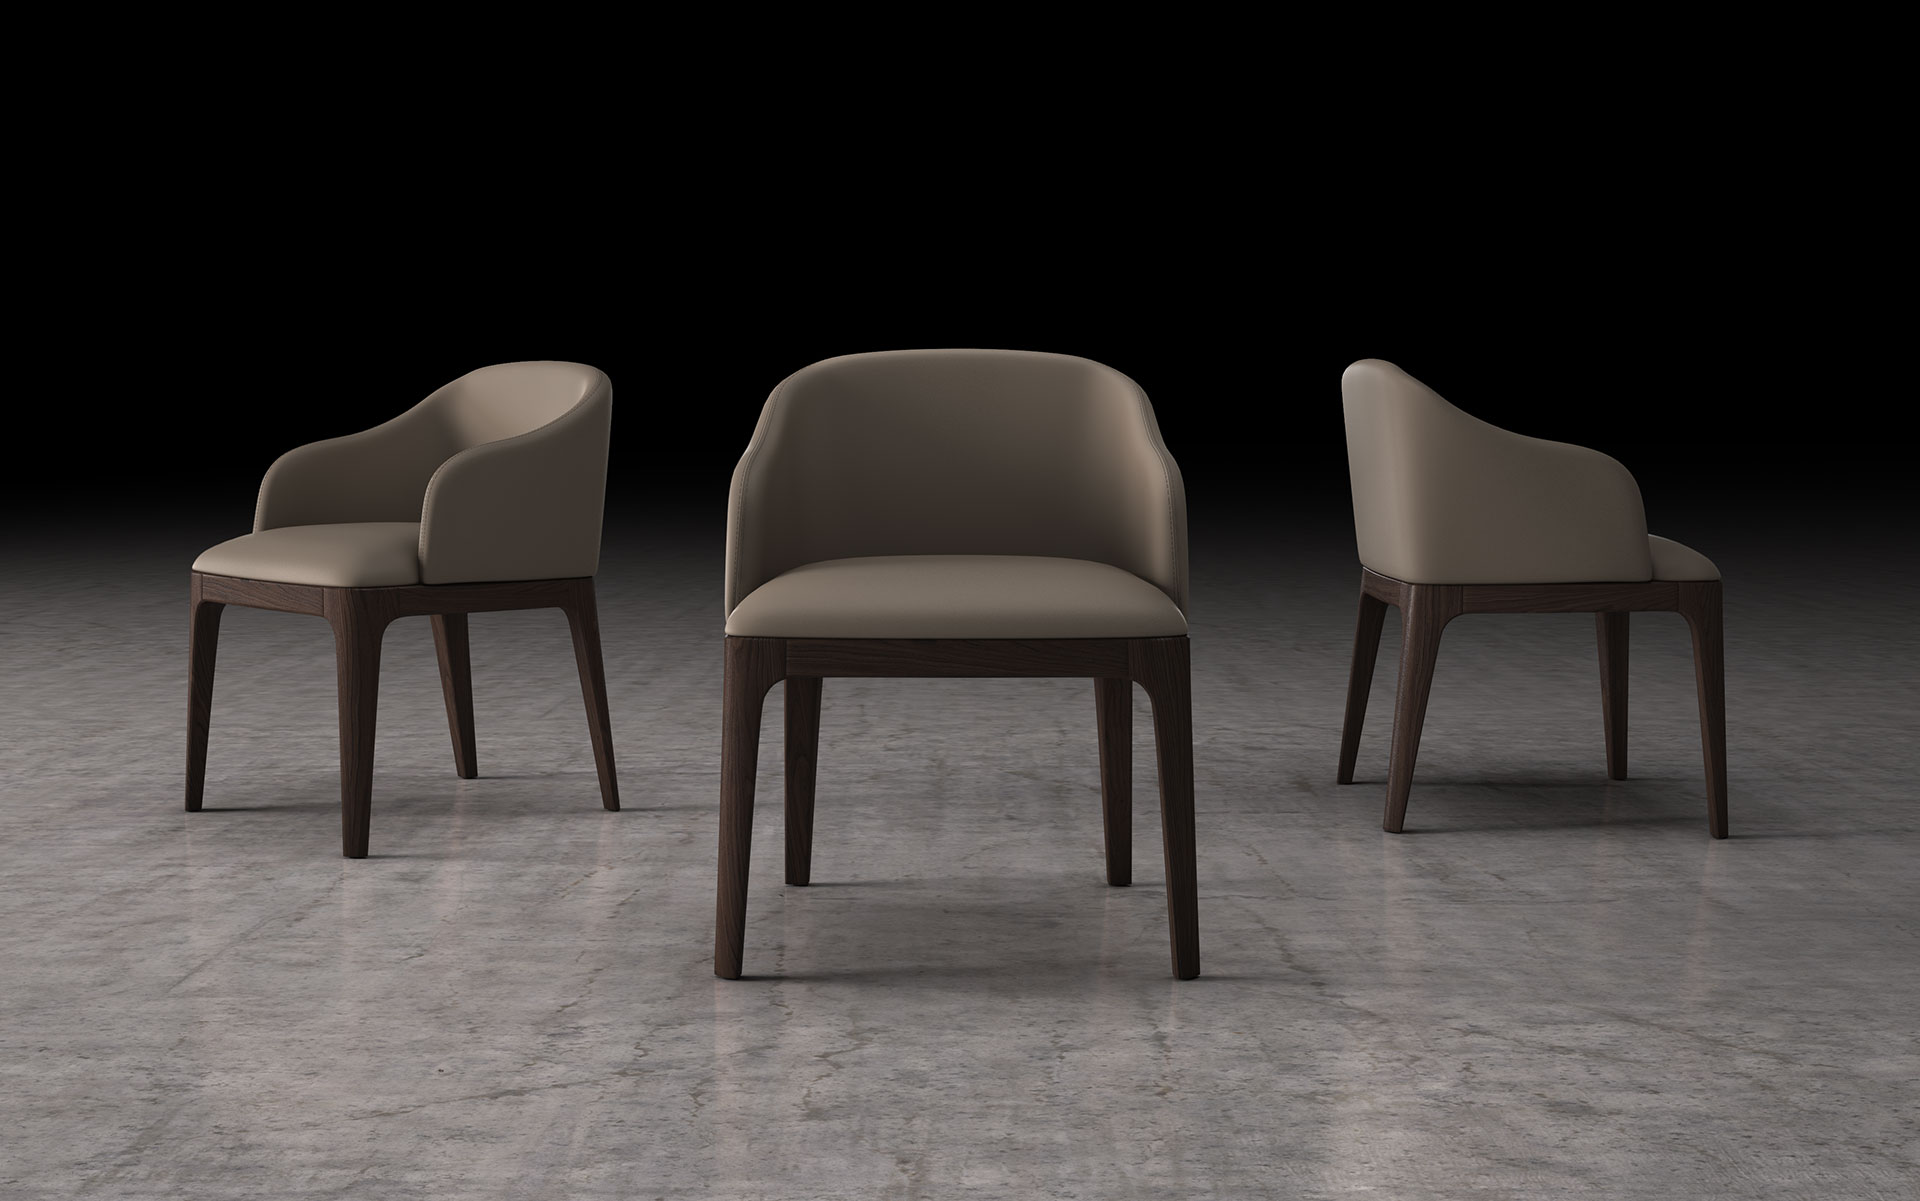 Marvelous Bimmaloft_dining_chairs_wooster_arm_3.  Bimmaloft_dining_chairs_wooster_arm_1.  Bimmaloft_dining_chairs_wooster_arm_2. Bimmaloft_dining_chairs_wooster_arm_3